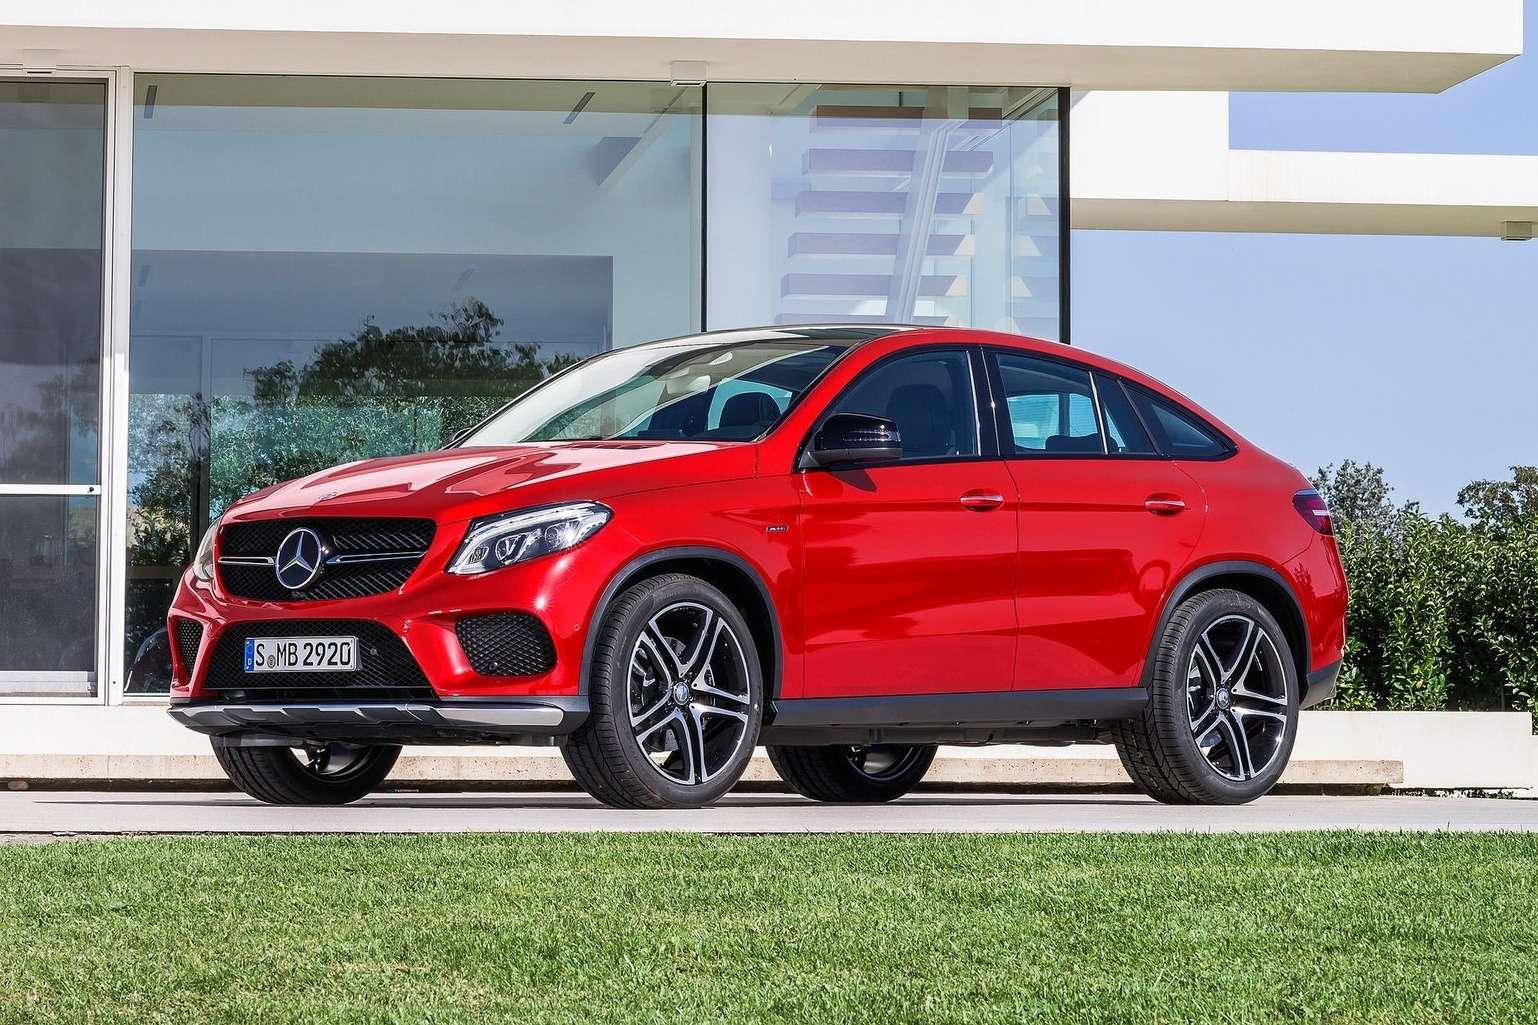 Mercedes-Benz-GLE450_AMG_Coupe_2016_1600x1200_wallpaper_01